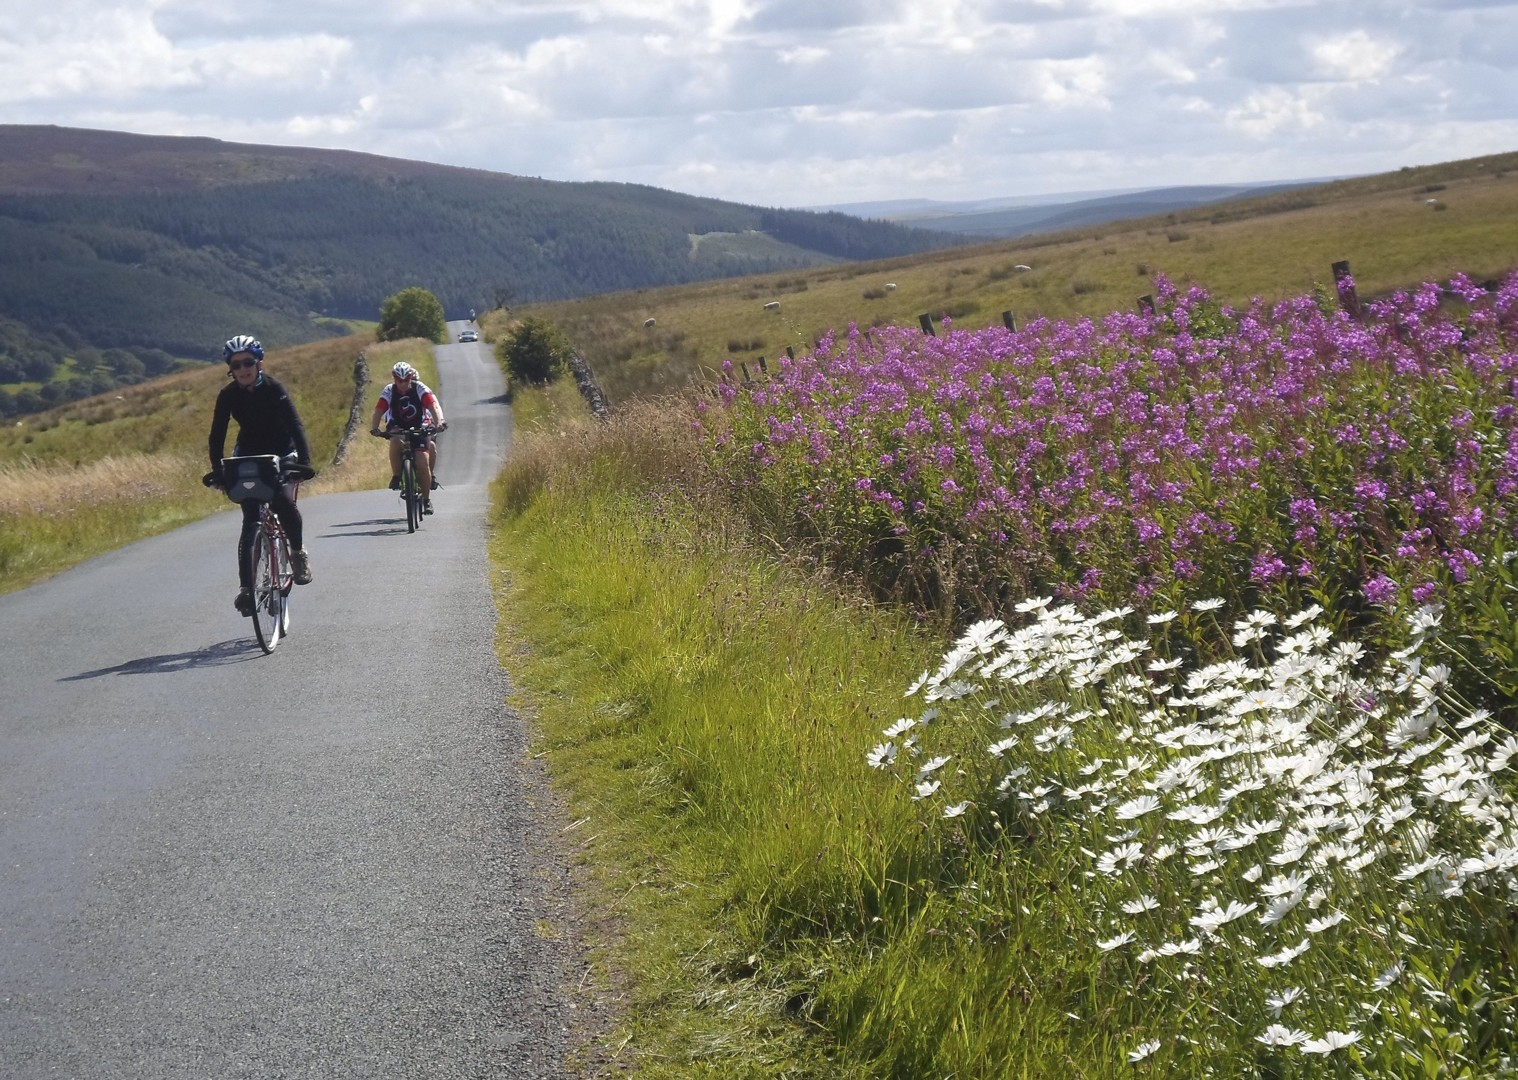 leisure-cycling-holiday-way-of-roses-landscape-nature.jpg - UK - Way of the Roses - Supported Leisure Cycling Holiday - Leisure Cycling